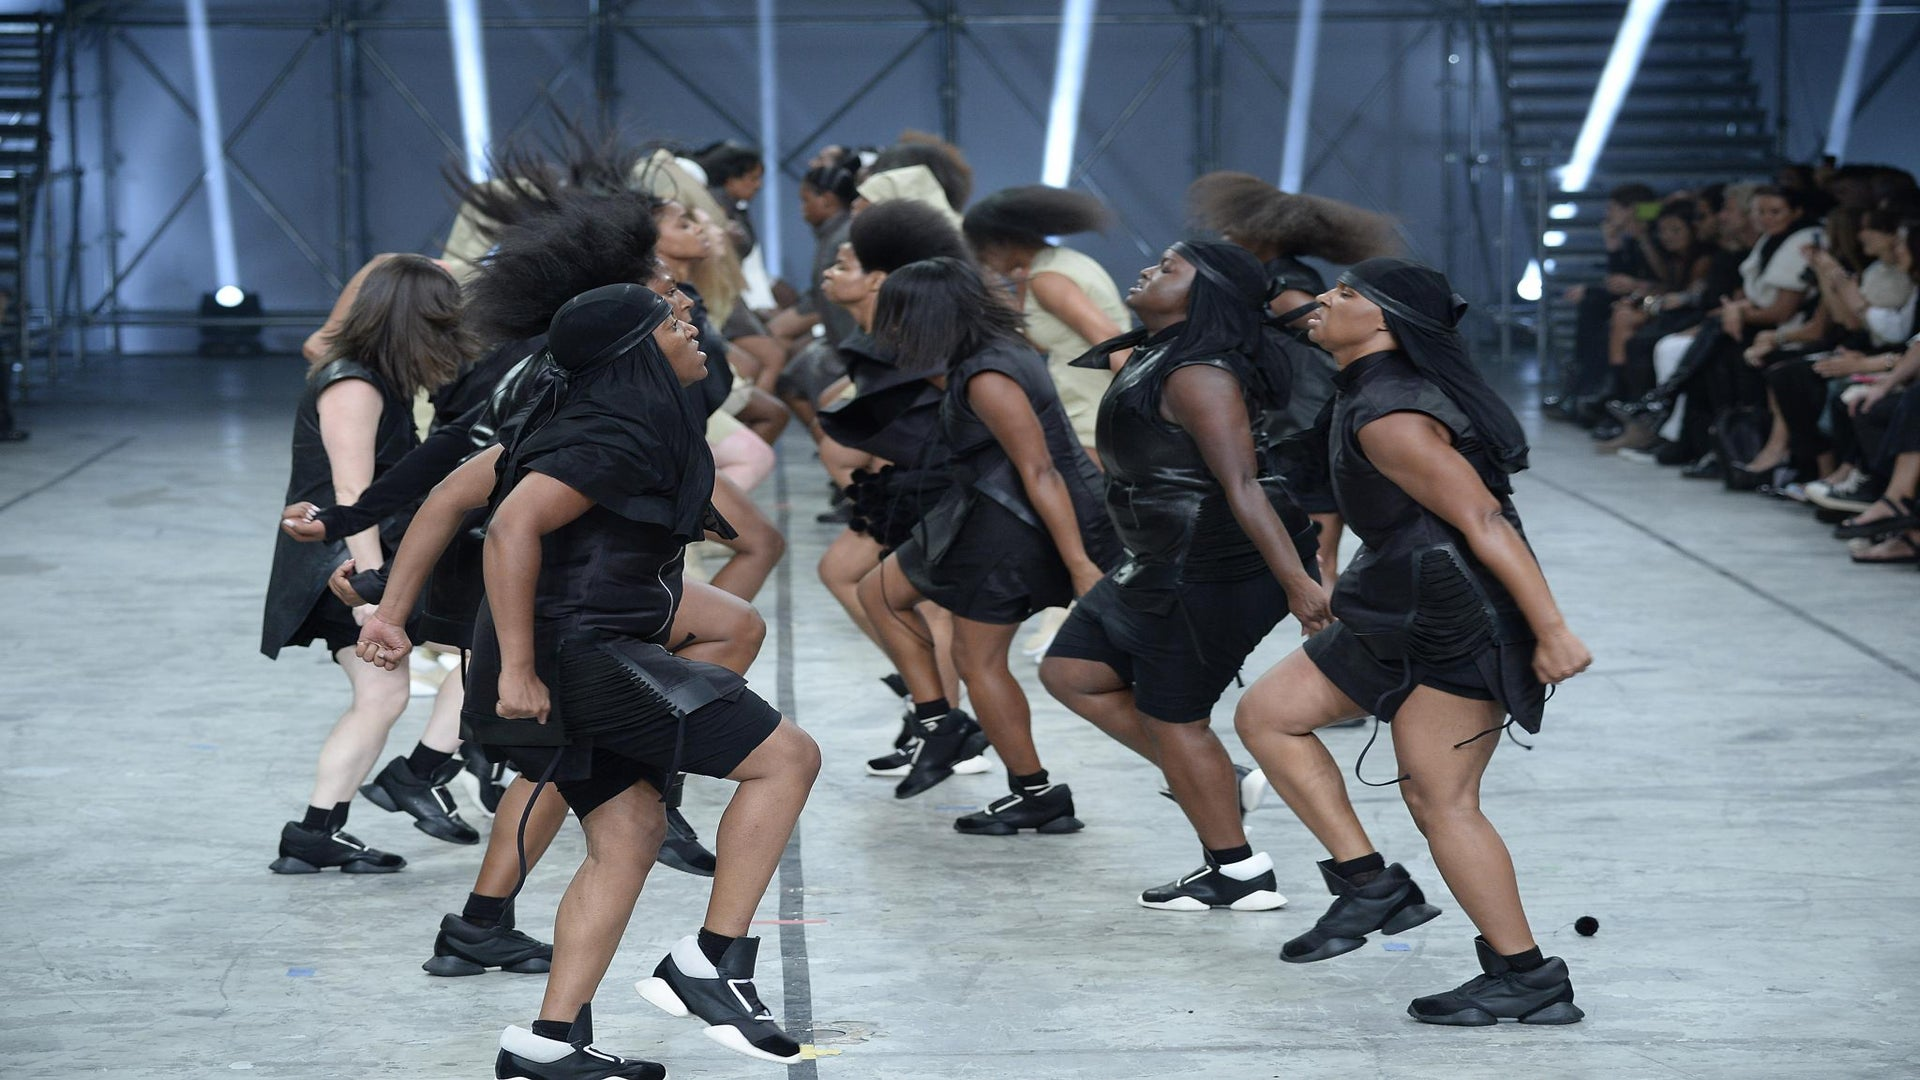 Must-See: Rick Owens Runway Show Uses Black Steppers